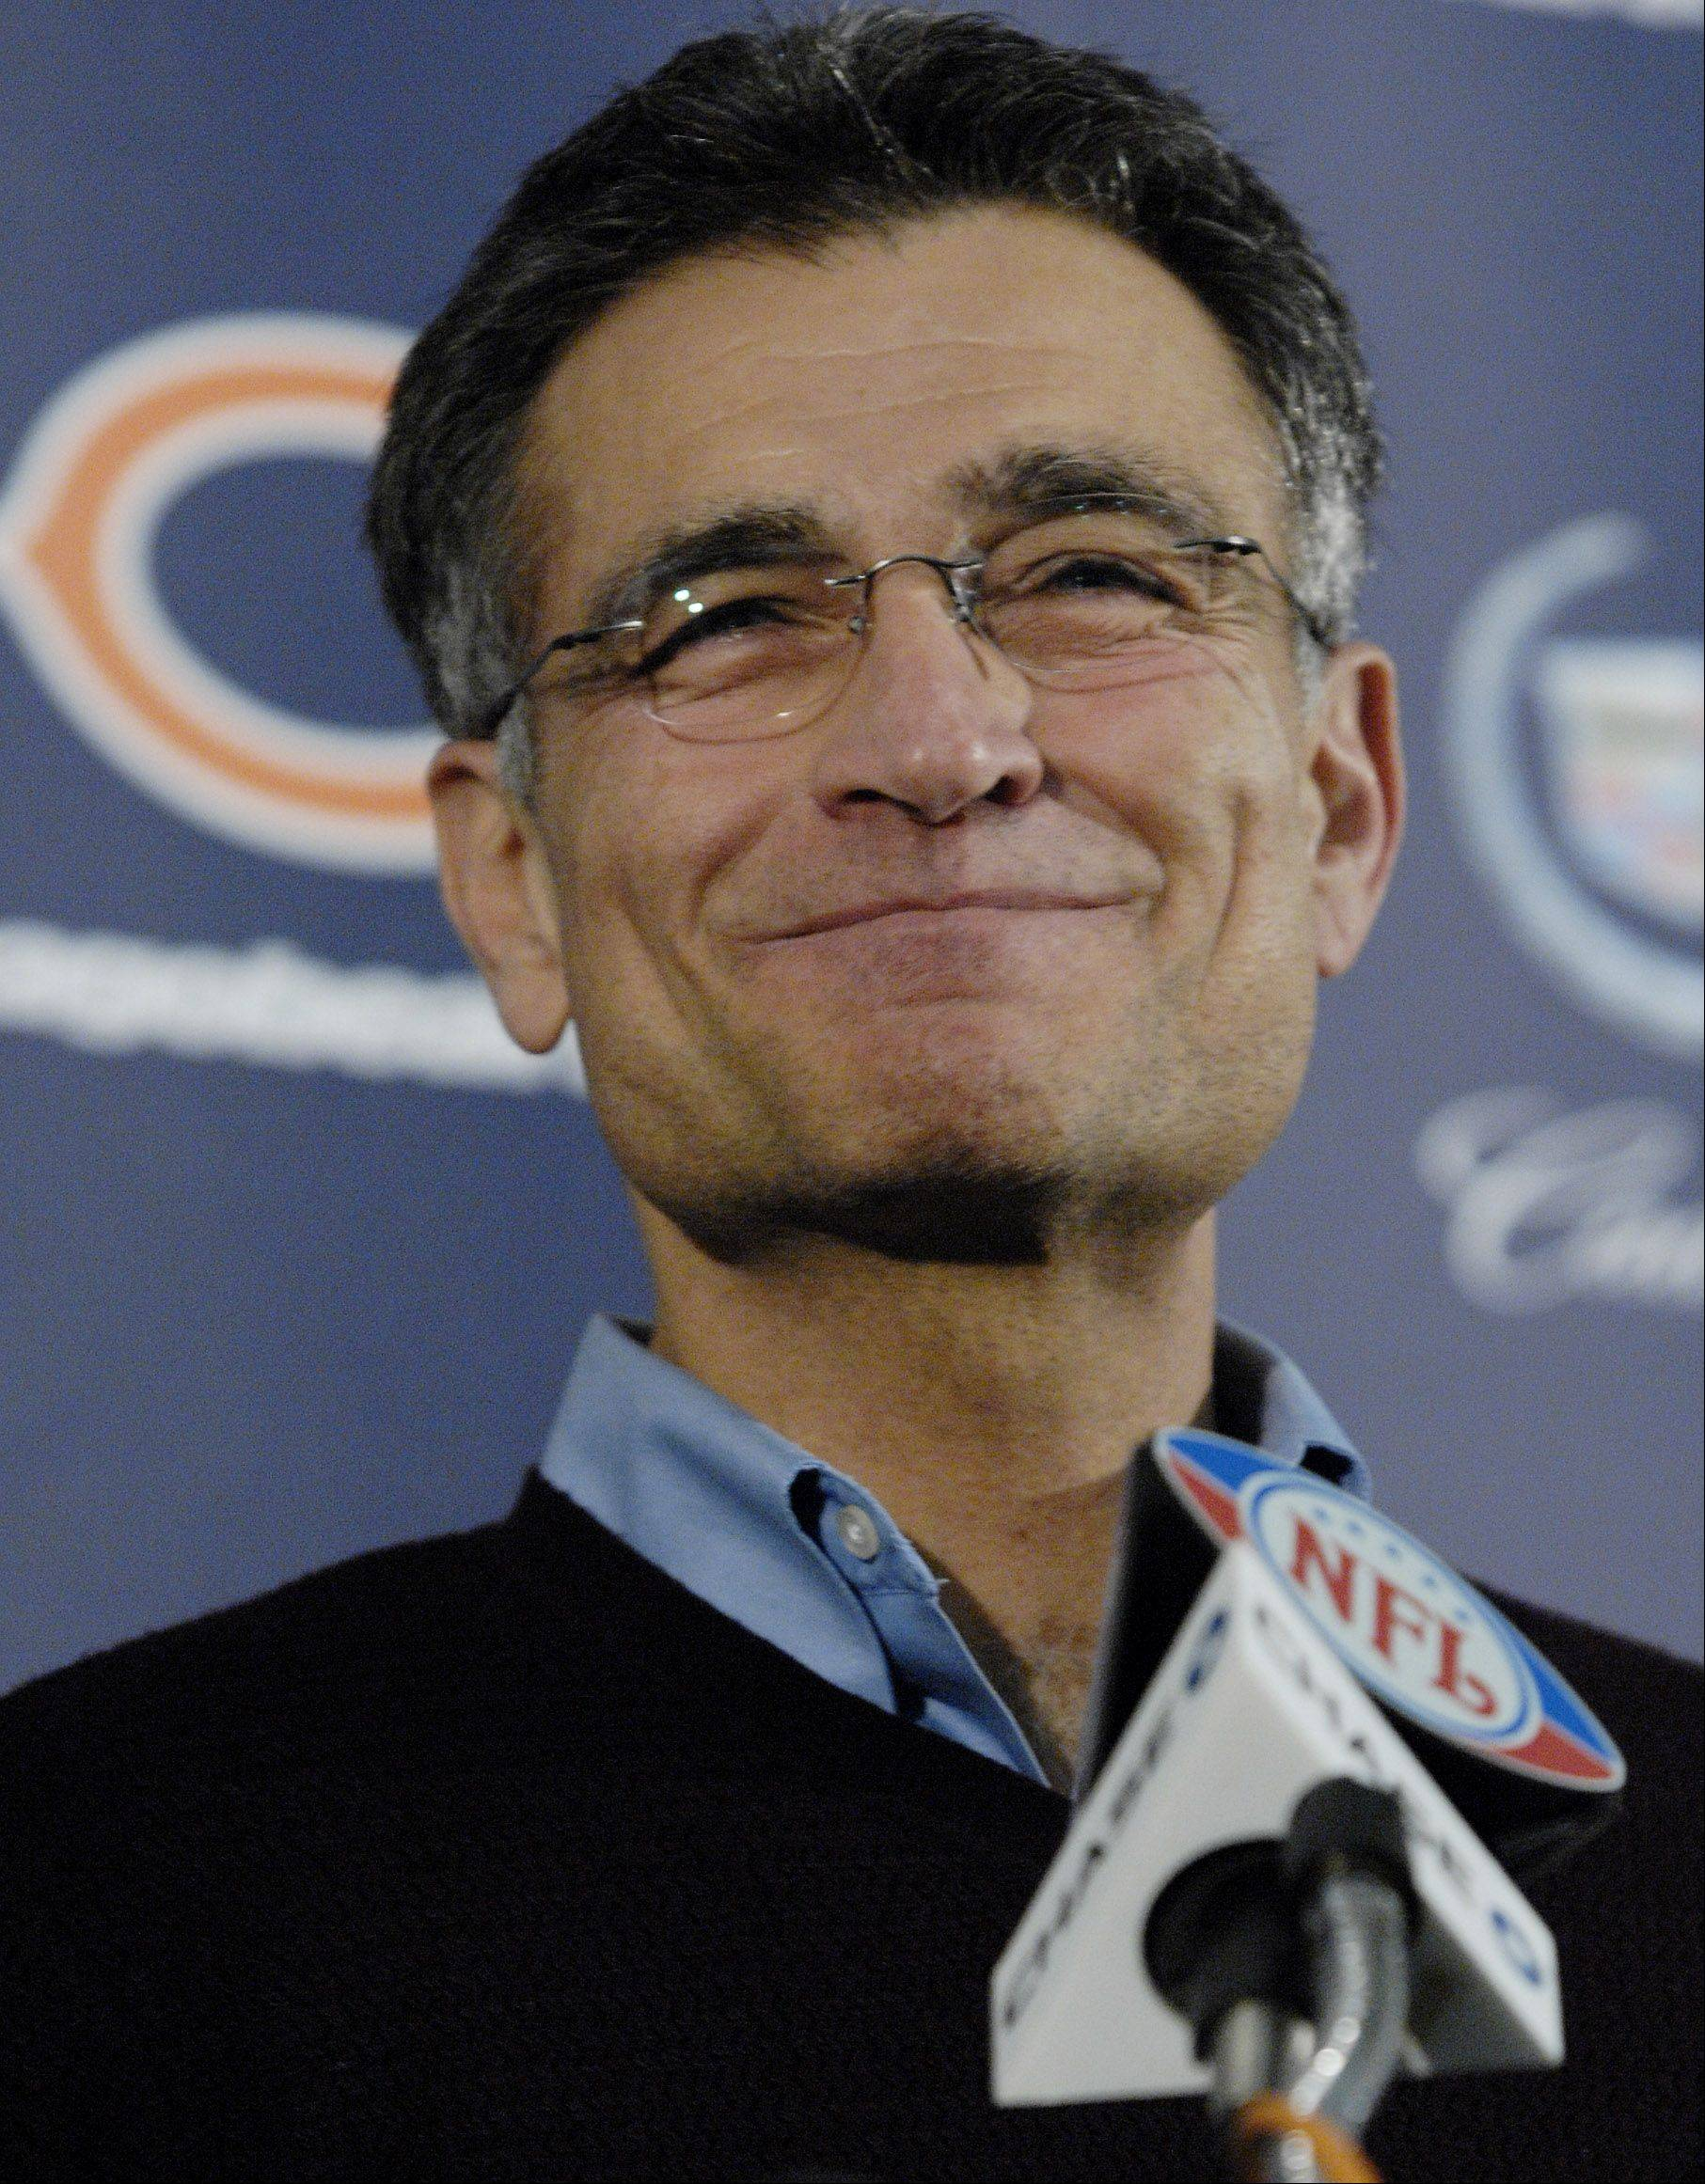 A draft-day snafu by the Bears and GM Jerry Angelo continues to confound Ravens coach John Harbaugh, who suggested this week that the Bears hand over some sort of compensation.